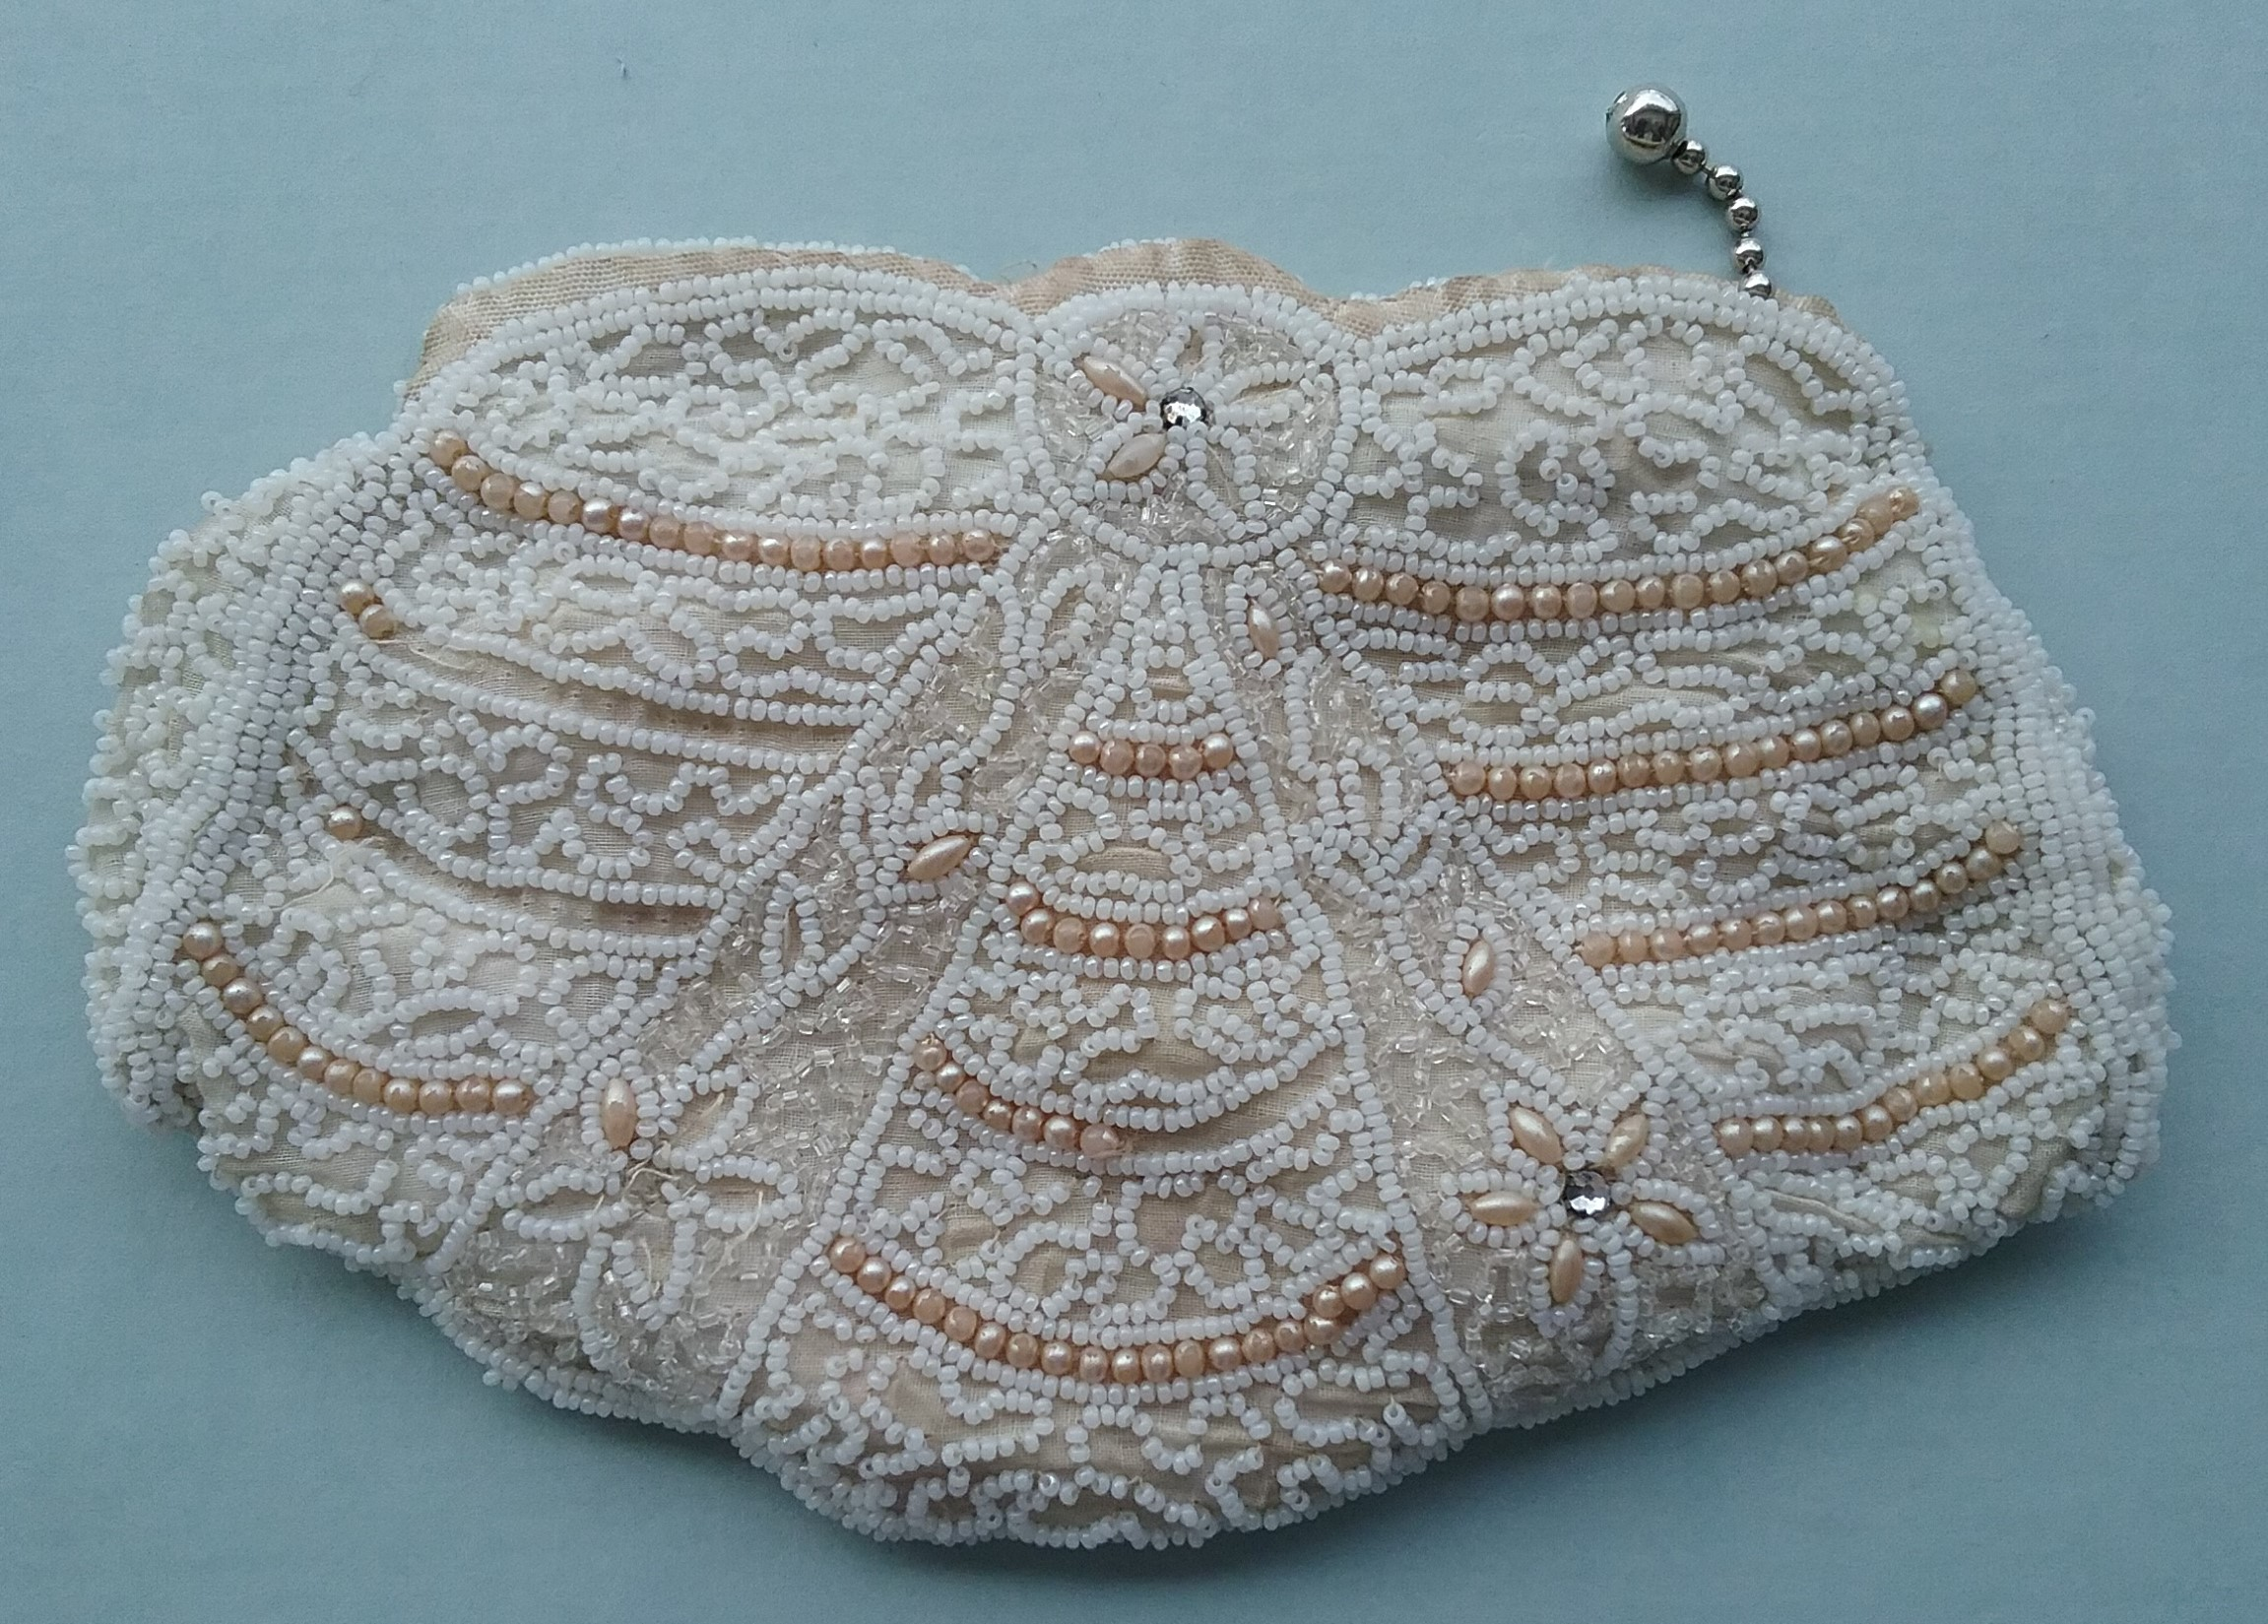 Clutch Purse: White clutch purse with clear and white seed beads, imitation pearl beads, and 2 rhinestones. Donated by Lucy Tanner. MCHS collections, #1993.46.32.